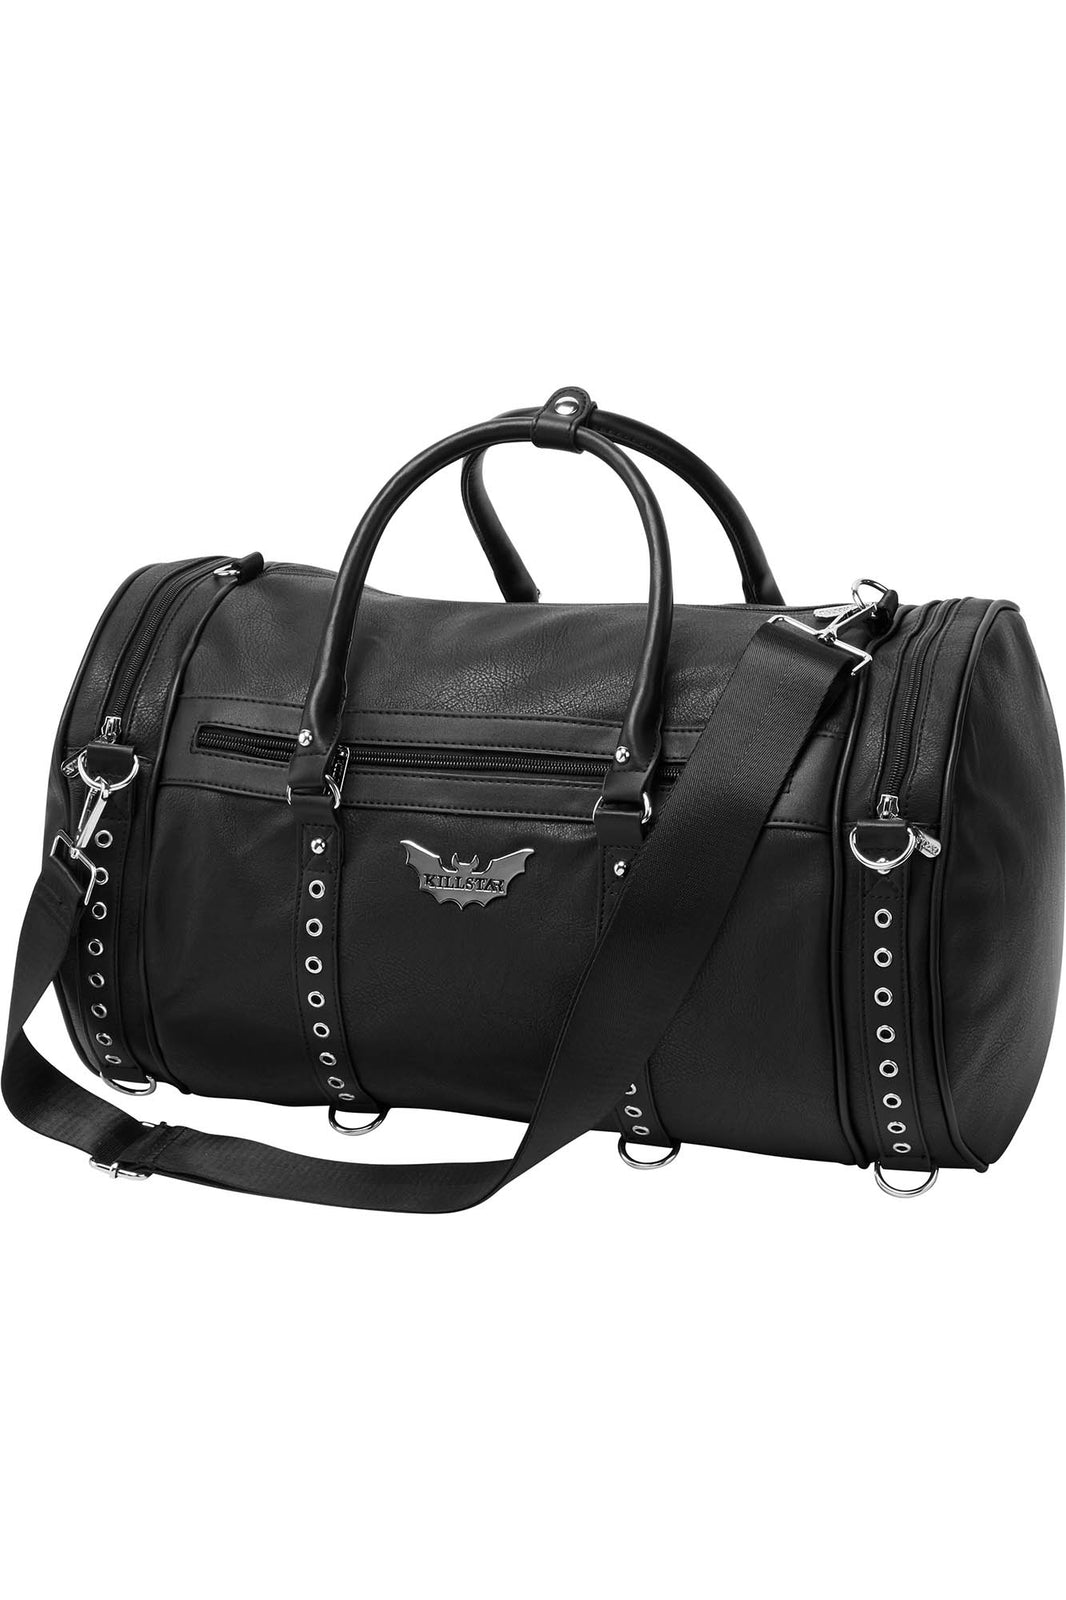 Riff Lord Duffle Tour Bag